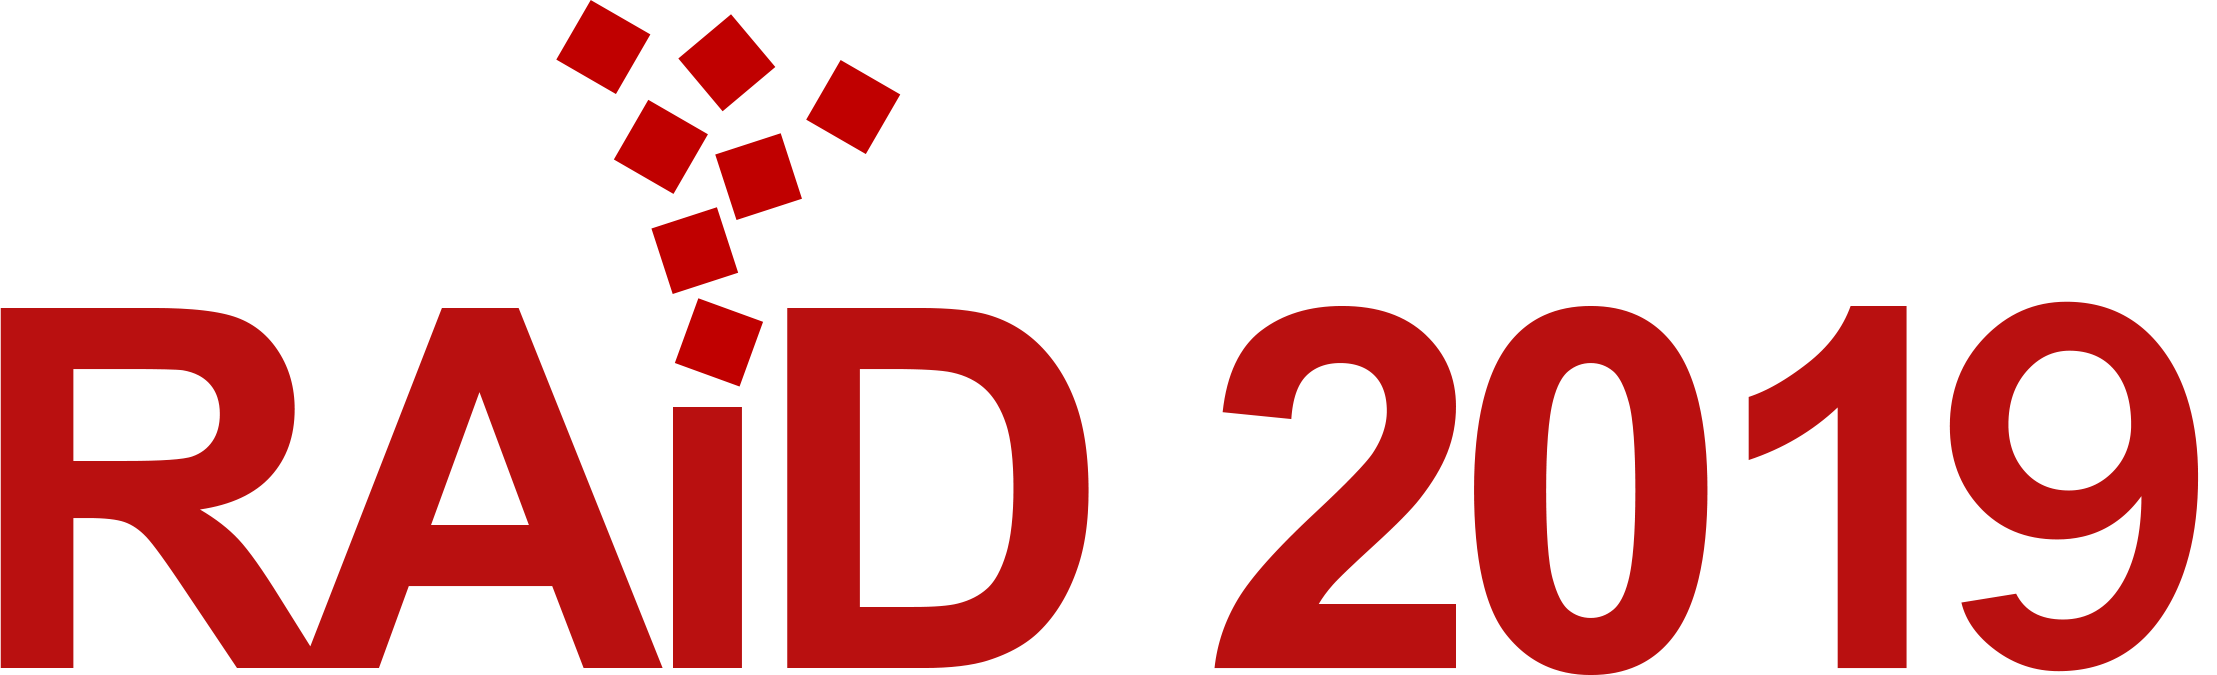 RAID 2019 (22nd International Symposium on Research in Attacks, Intrusions and Defenses)